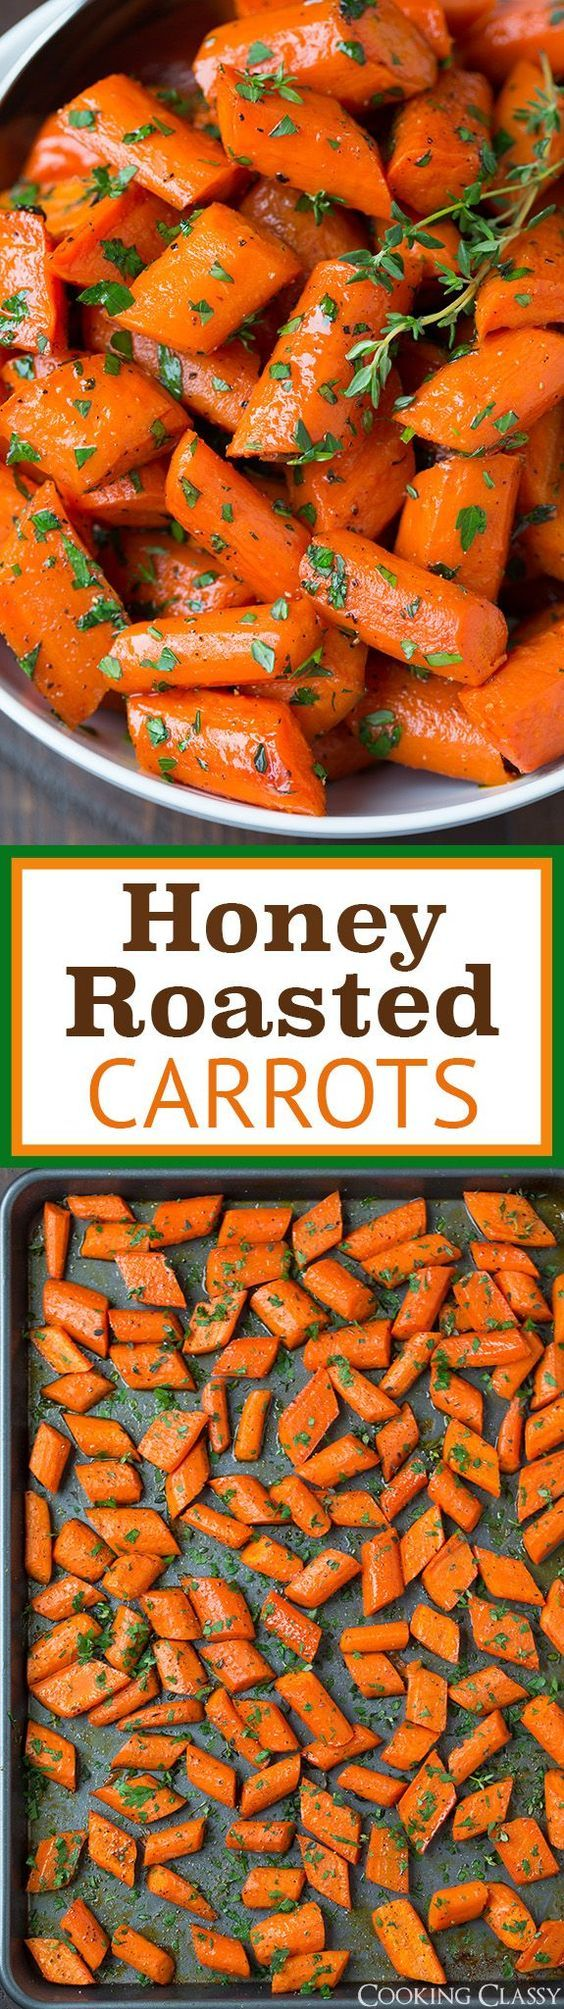 Honey Roasted Carrots - the perfect easy Thanksgiving side dish! Flavorful and delicious!!